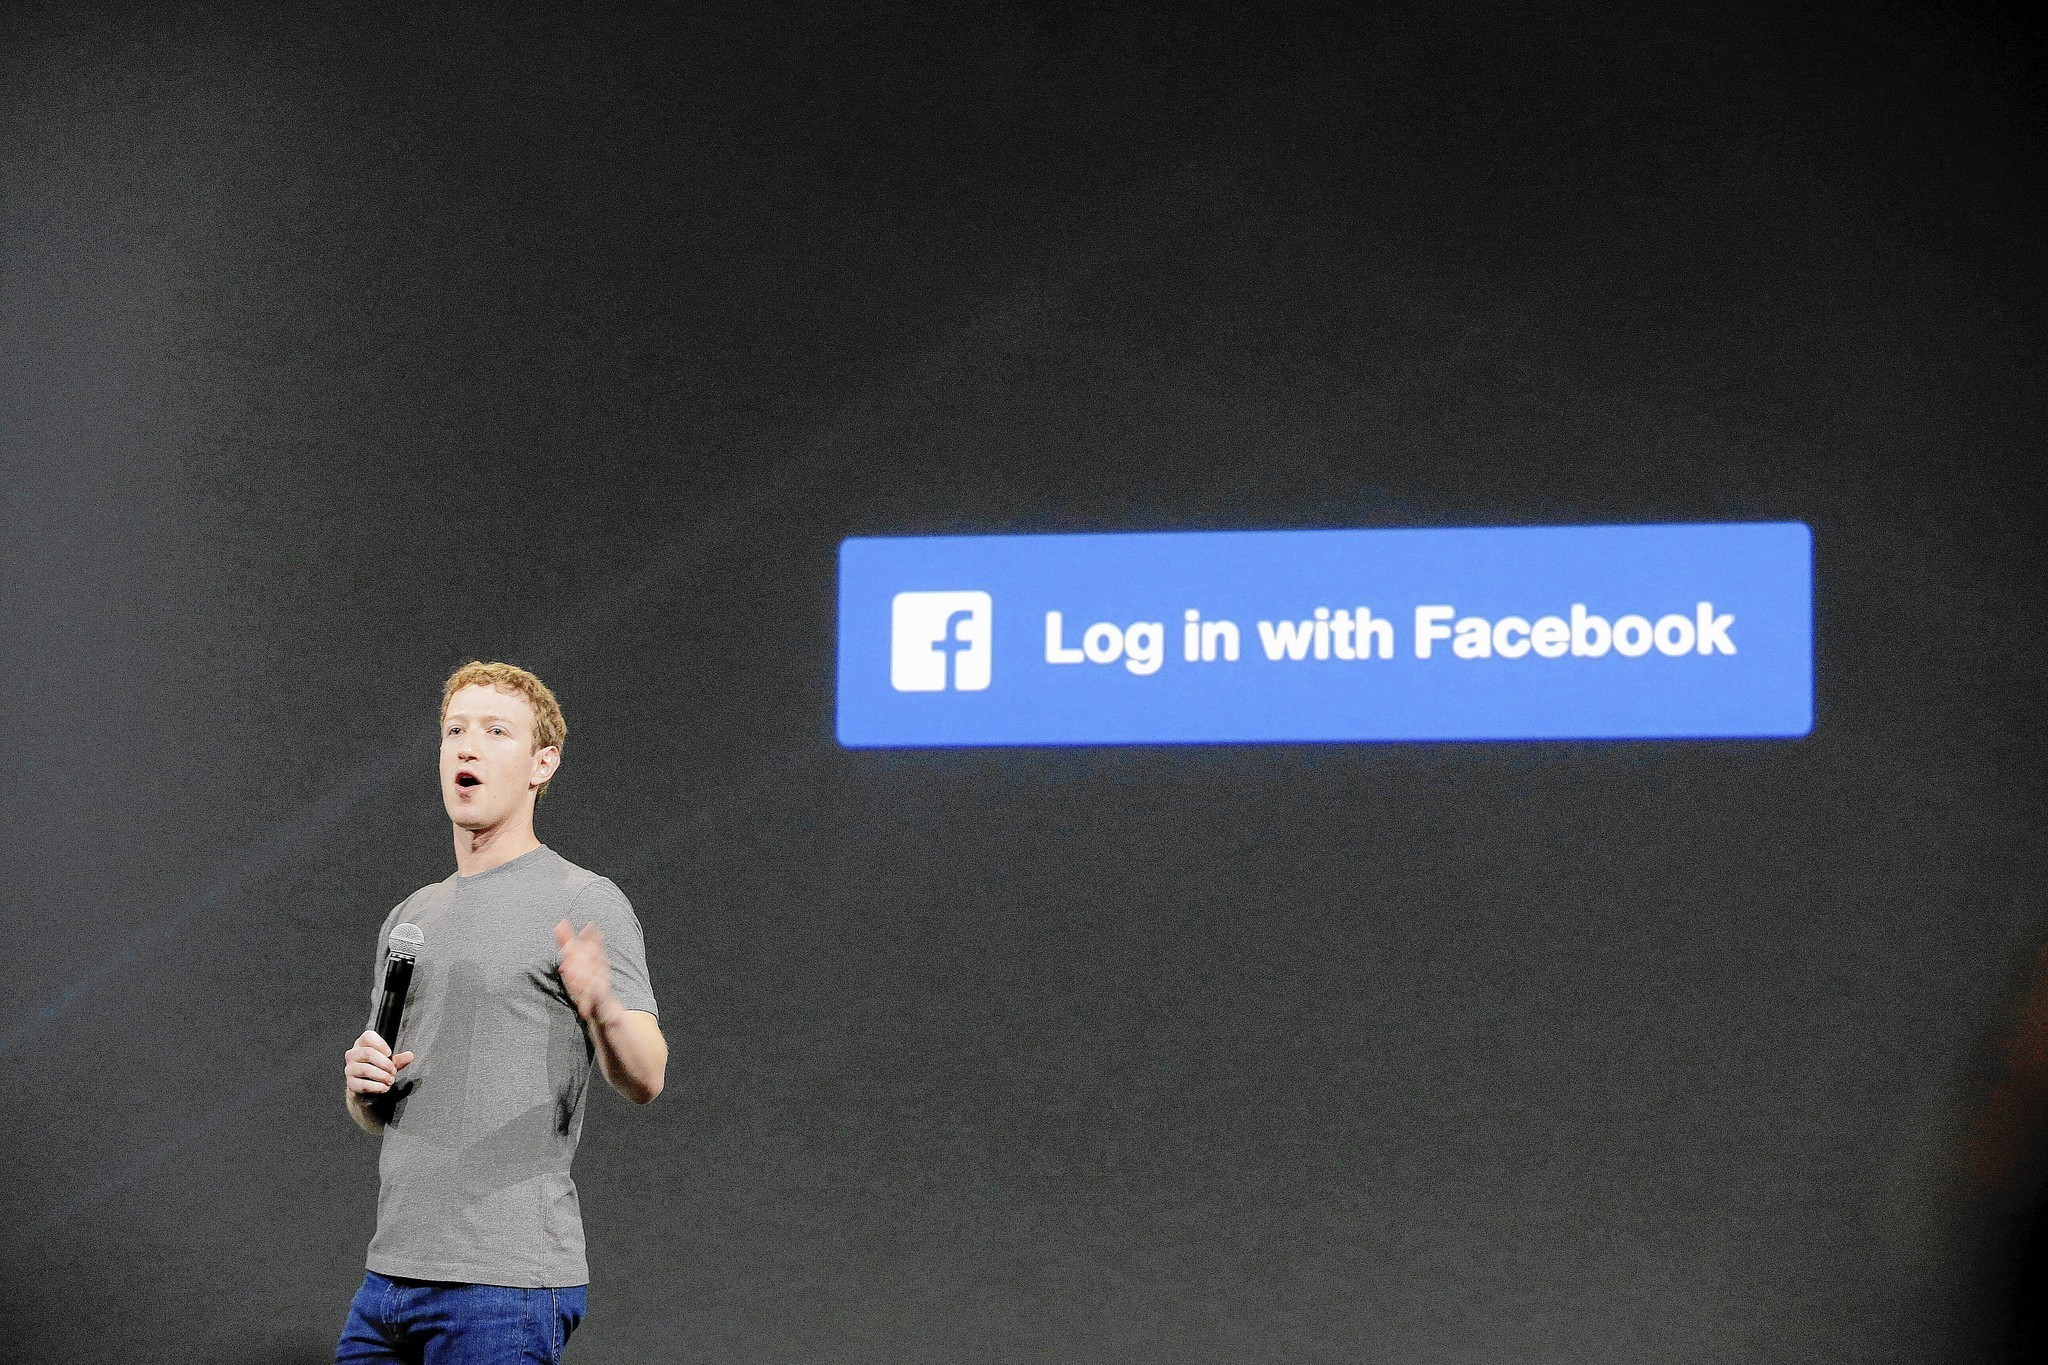 how to change share settings on facebook to public